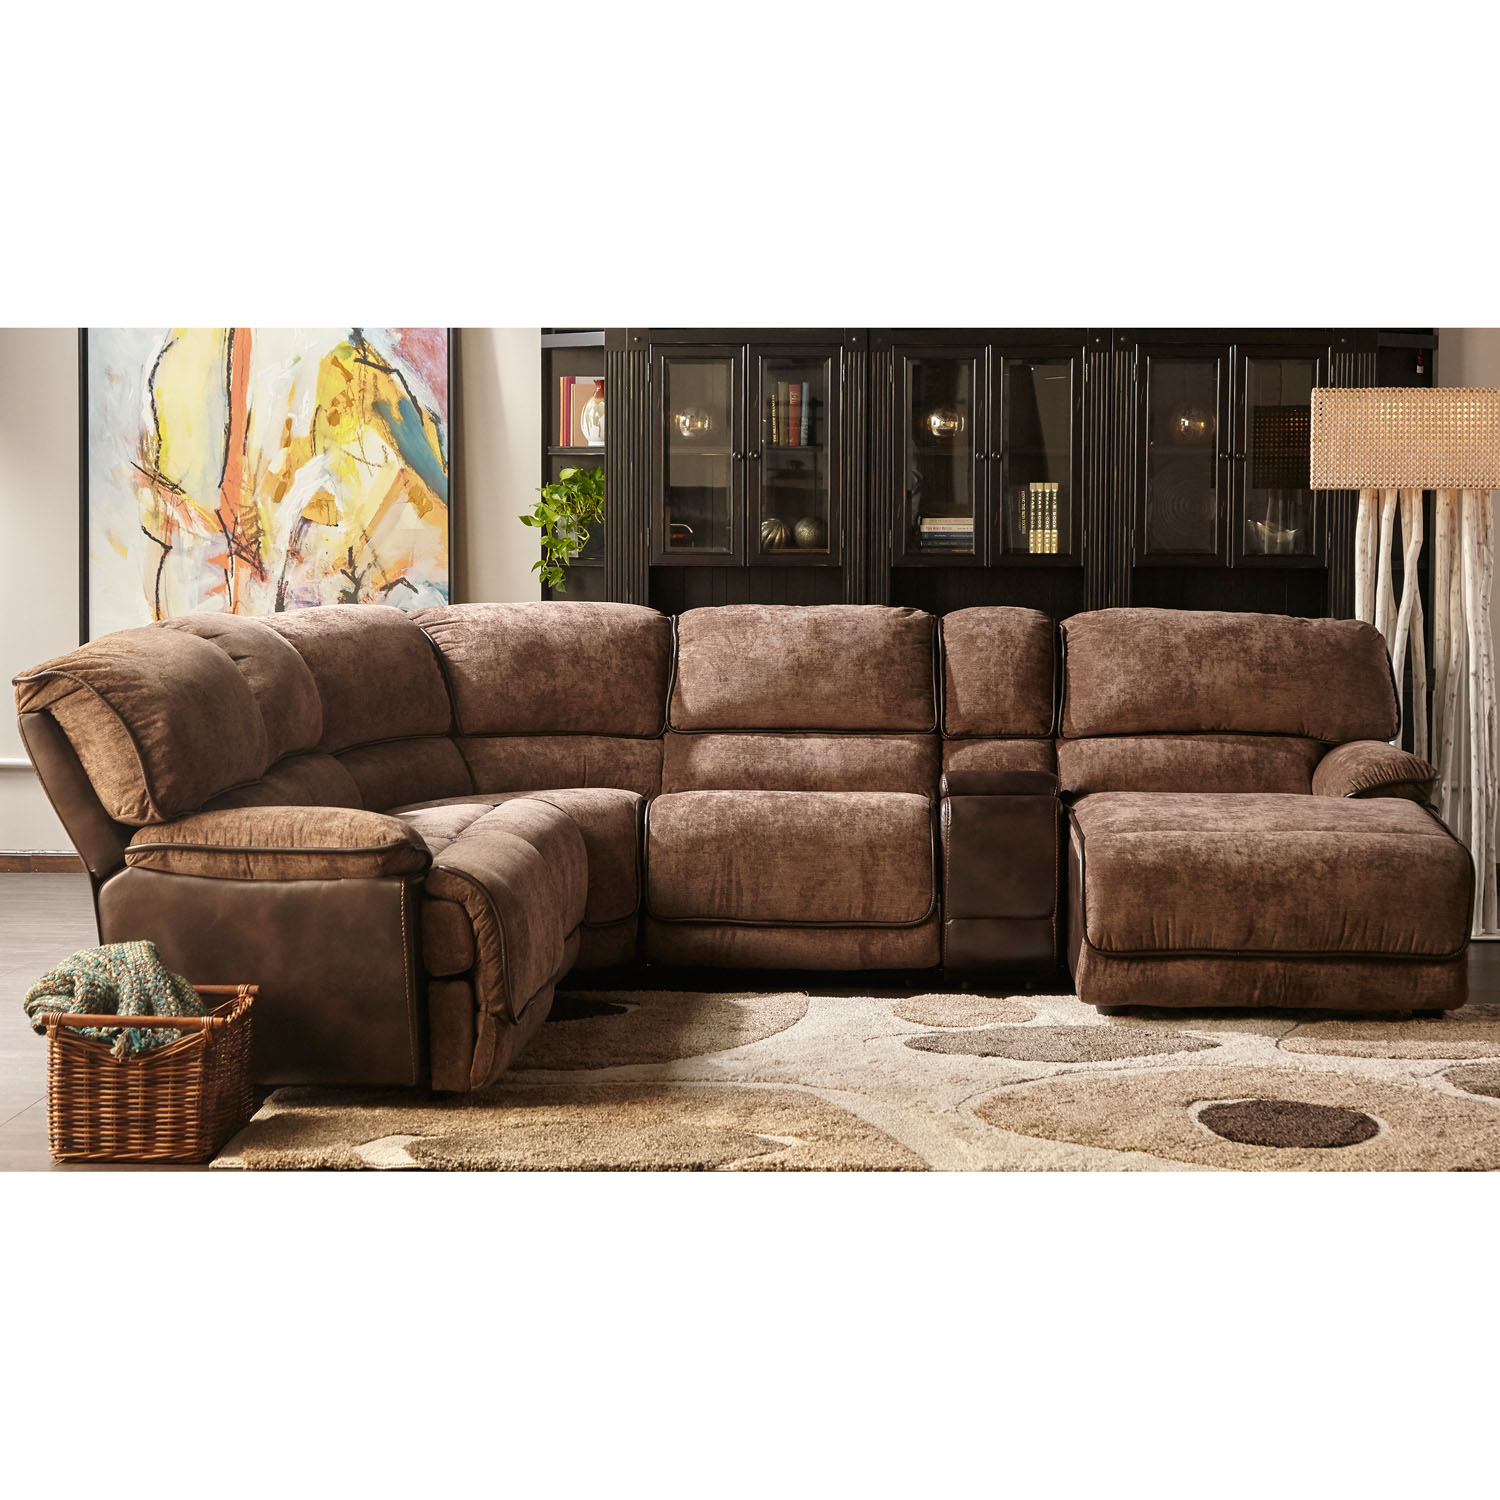 Cambridge Saros 6-Piece Sectional Sofa